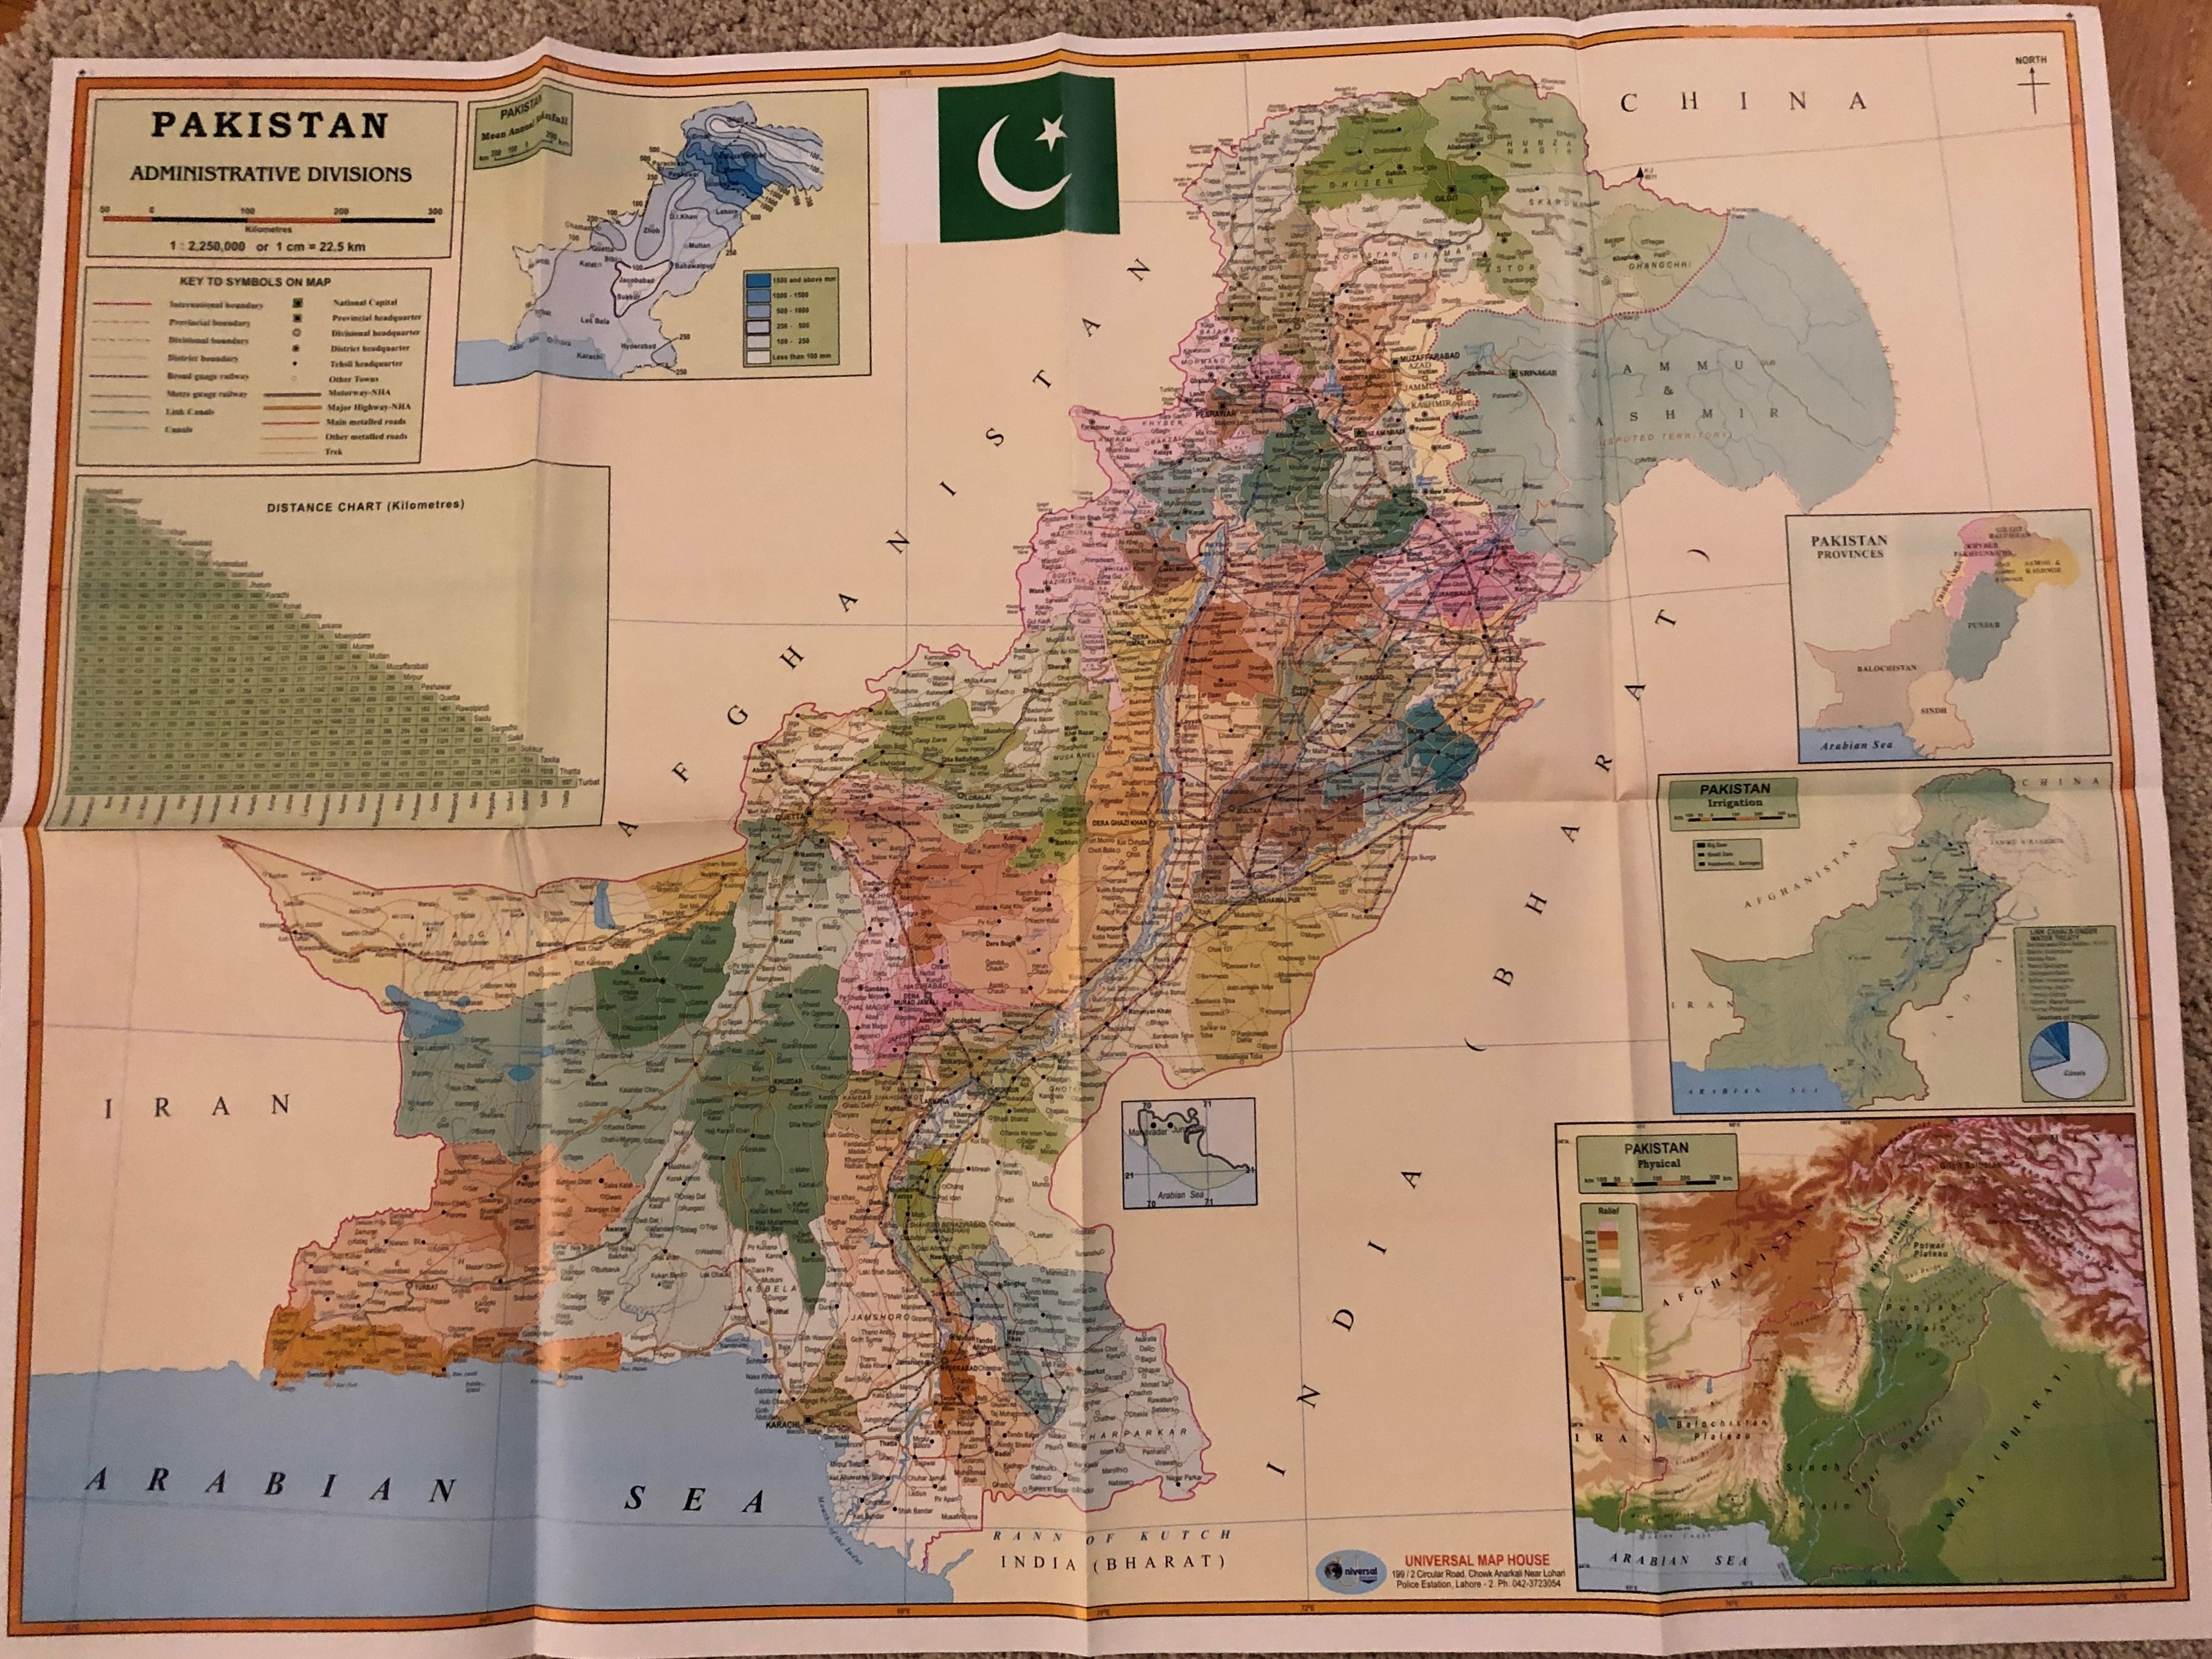 pakistan-administrative-divisions-map-1-.jpg